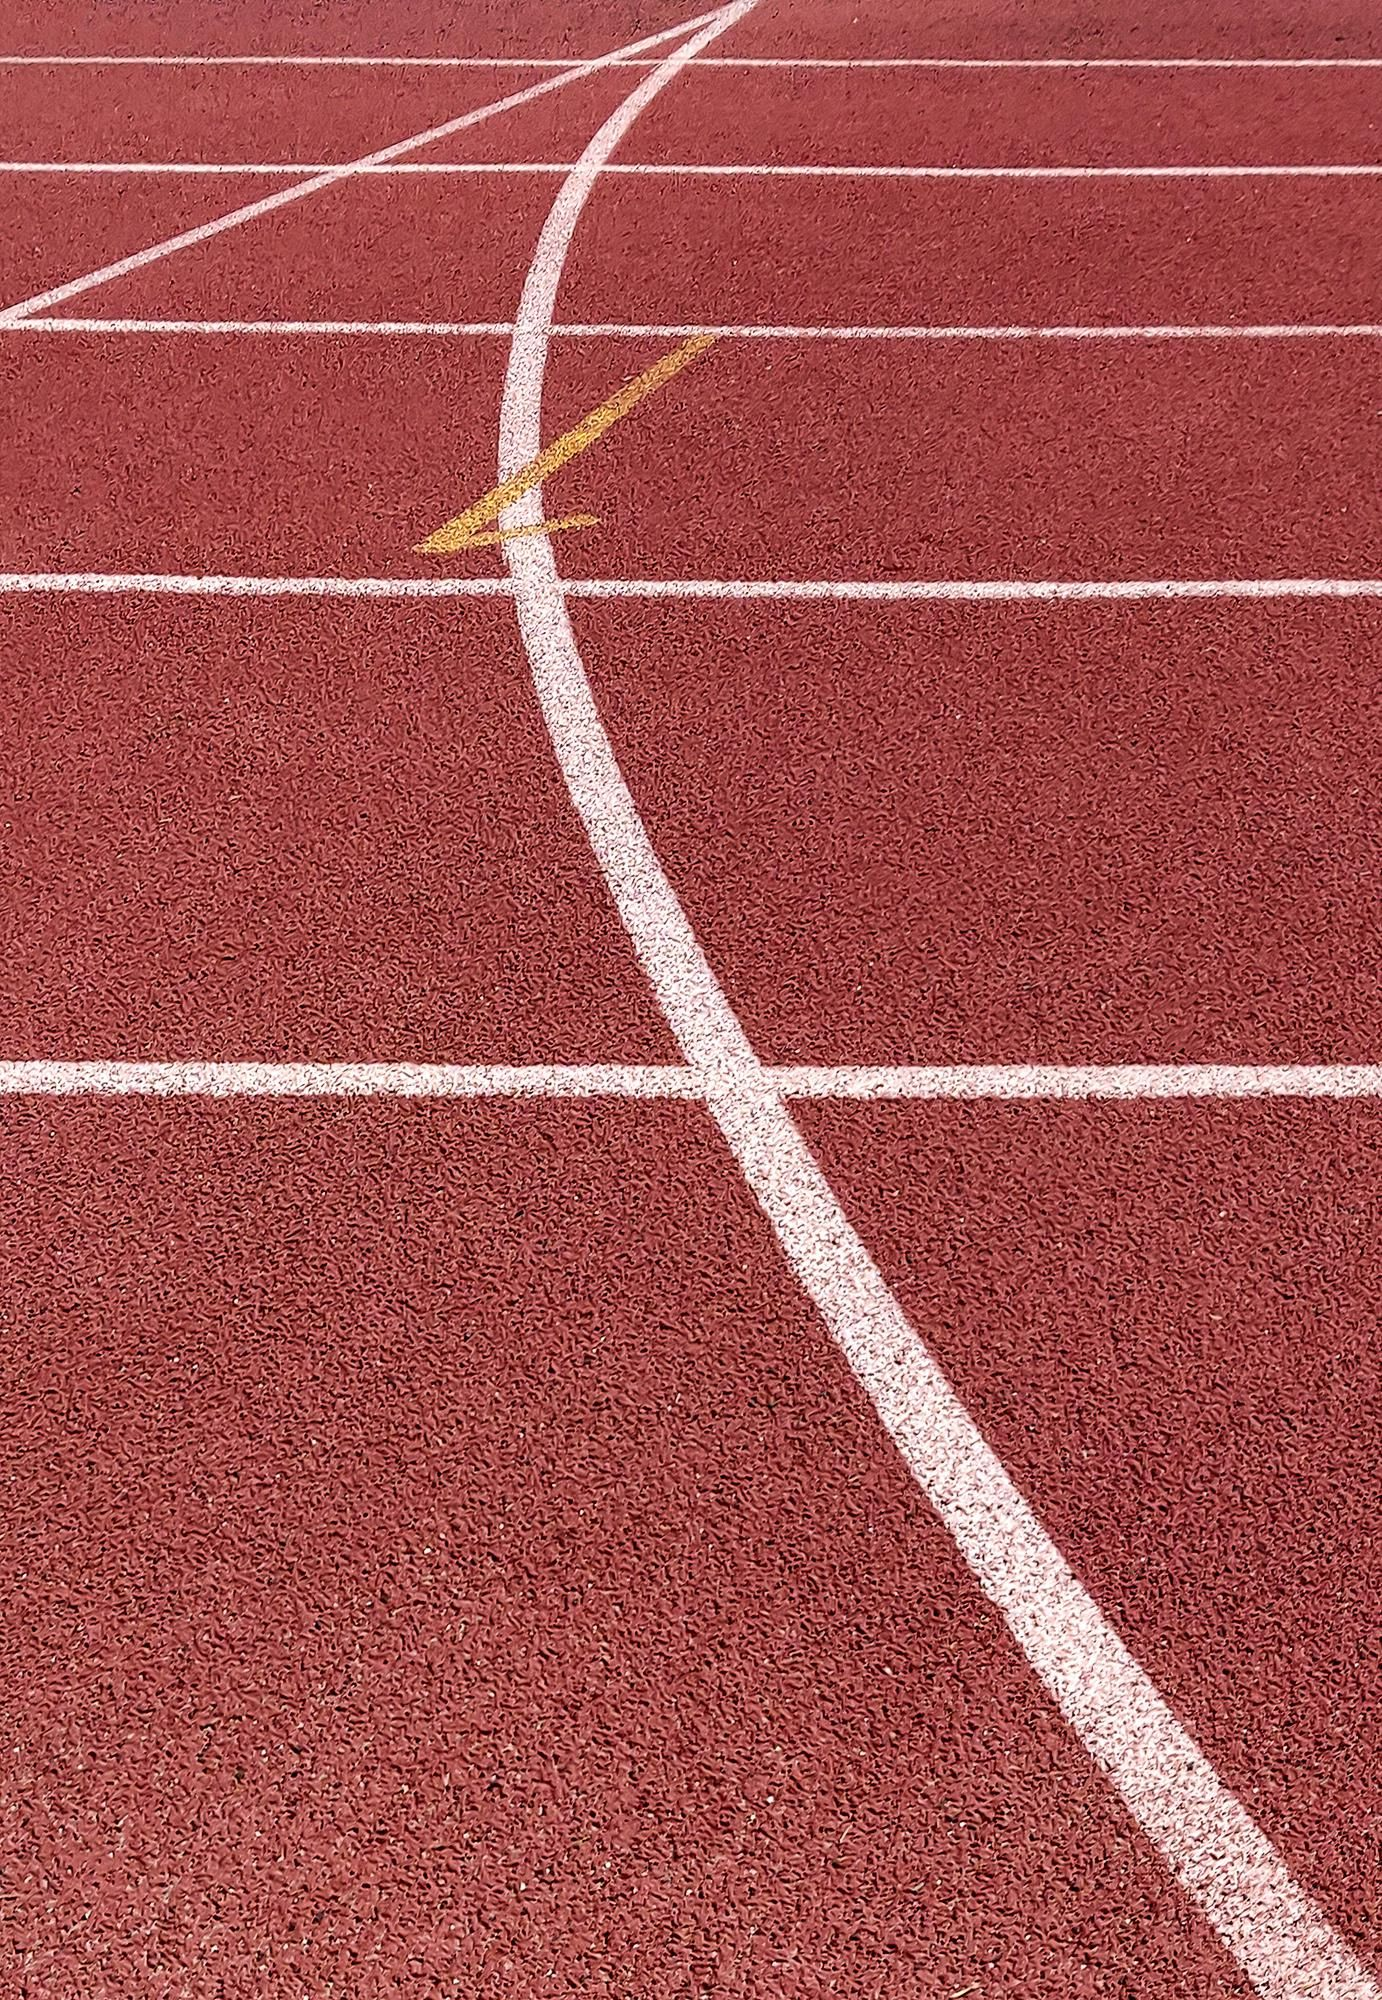 Itap Of An Athletics Track Photo Background Editor Wallpaper Photohd Photonew Photobackground Pics Athletics Track Photo Backgrounds Wallpaper